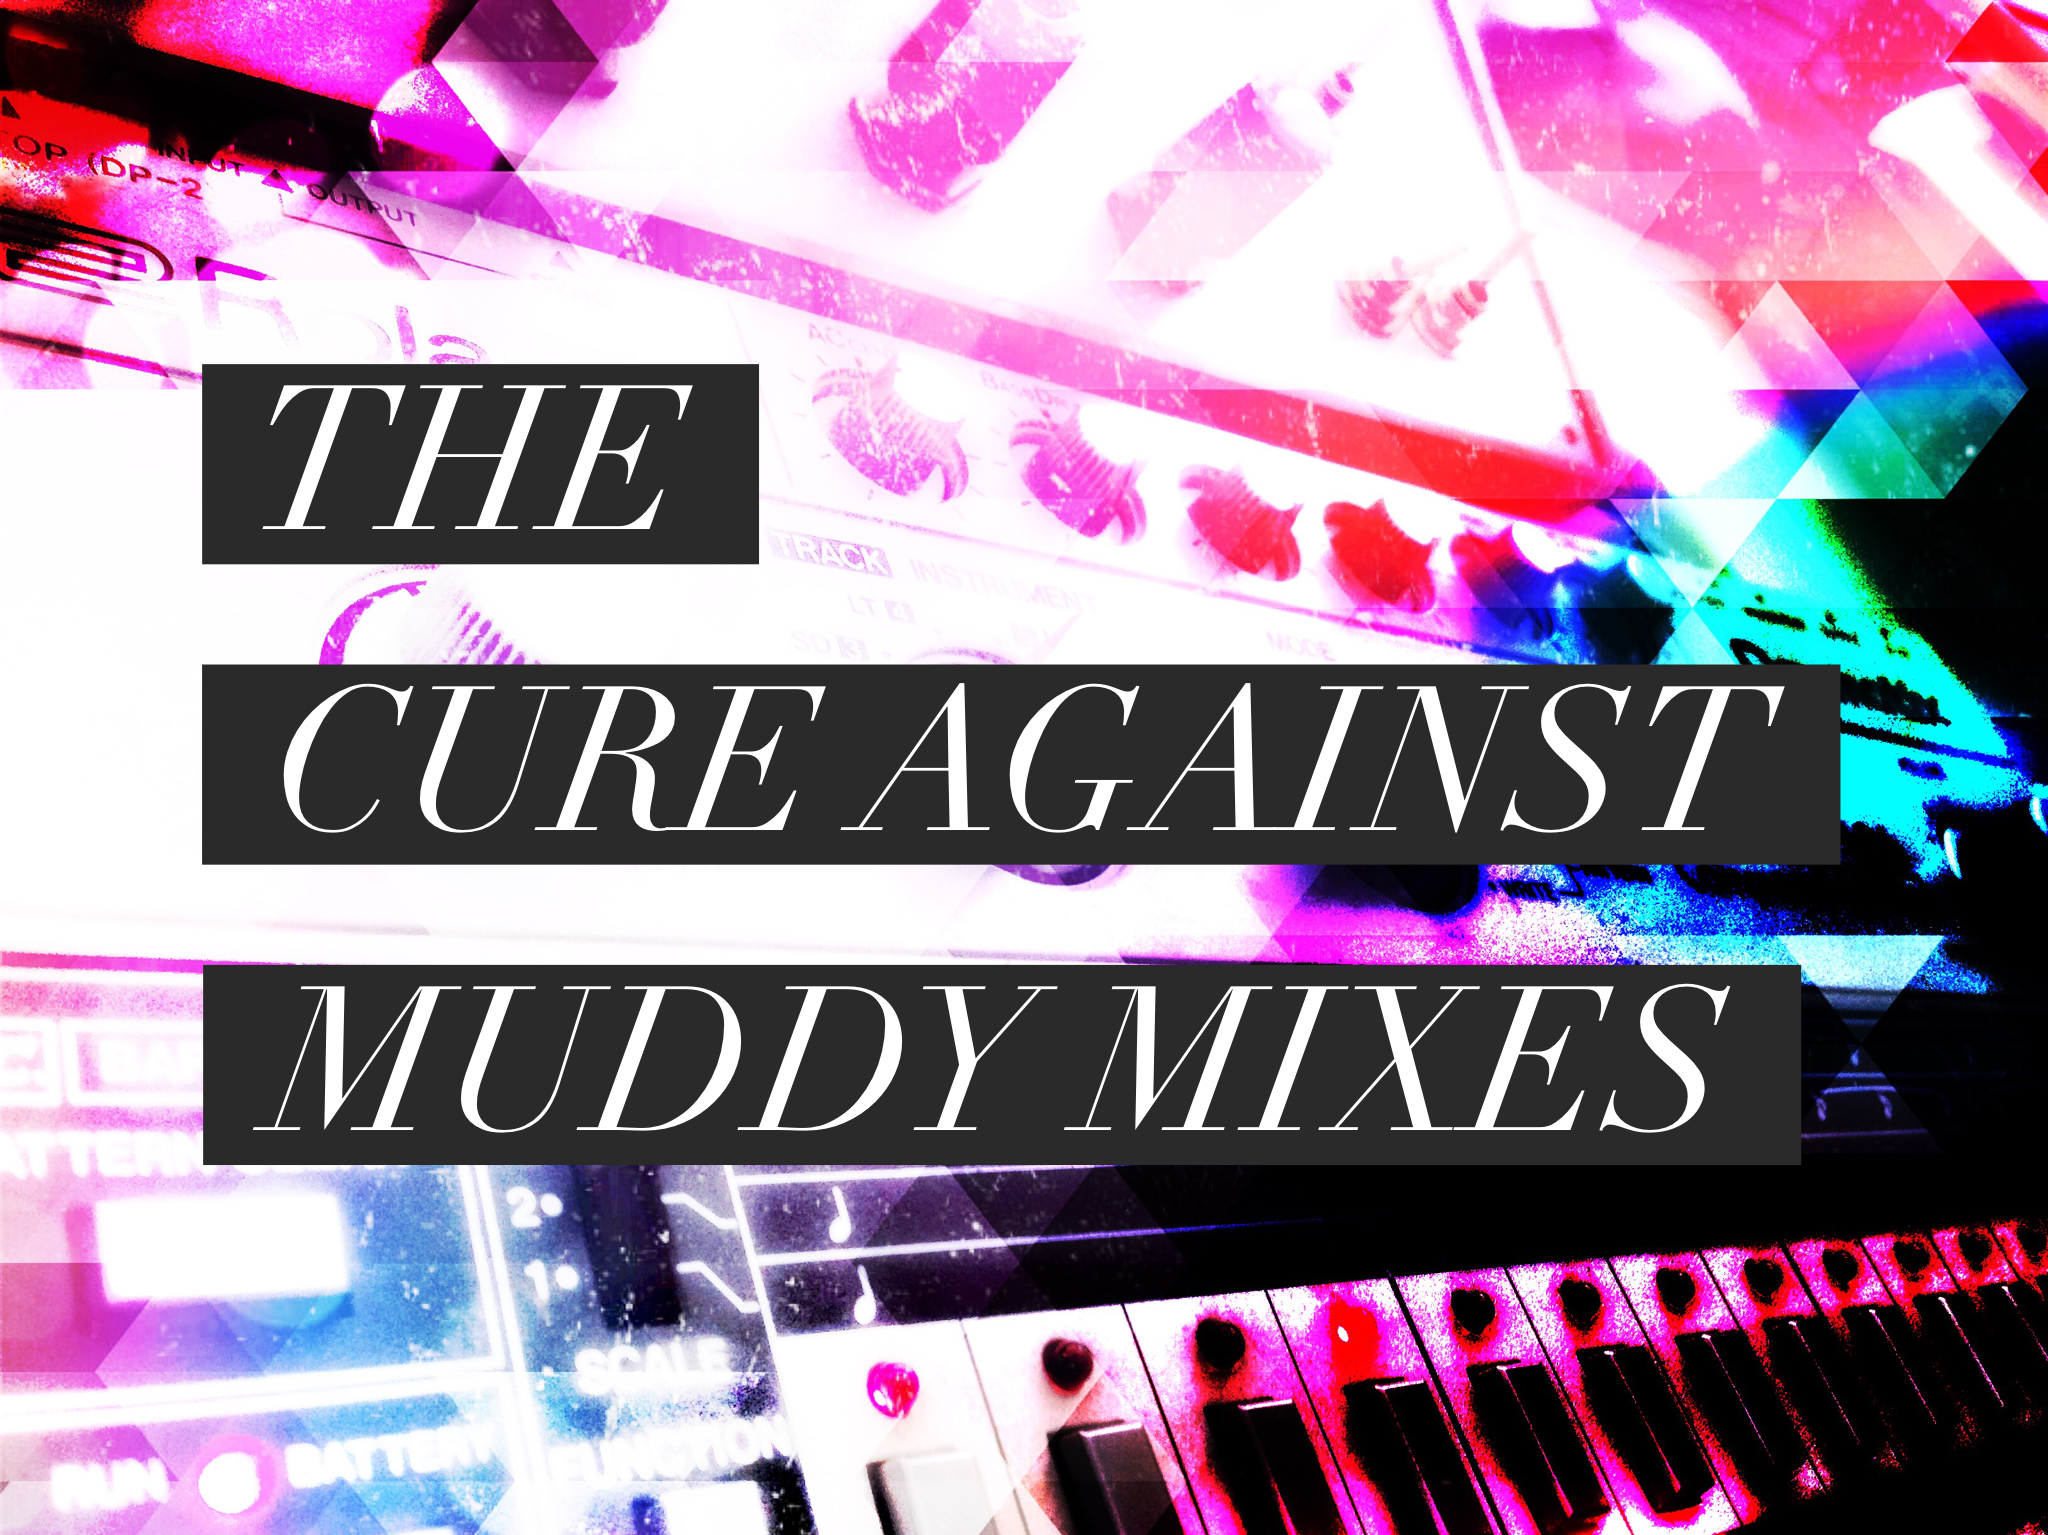 The Cure Against Muddy Mixes